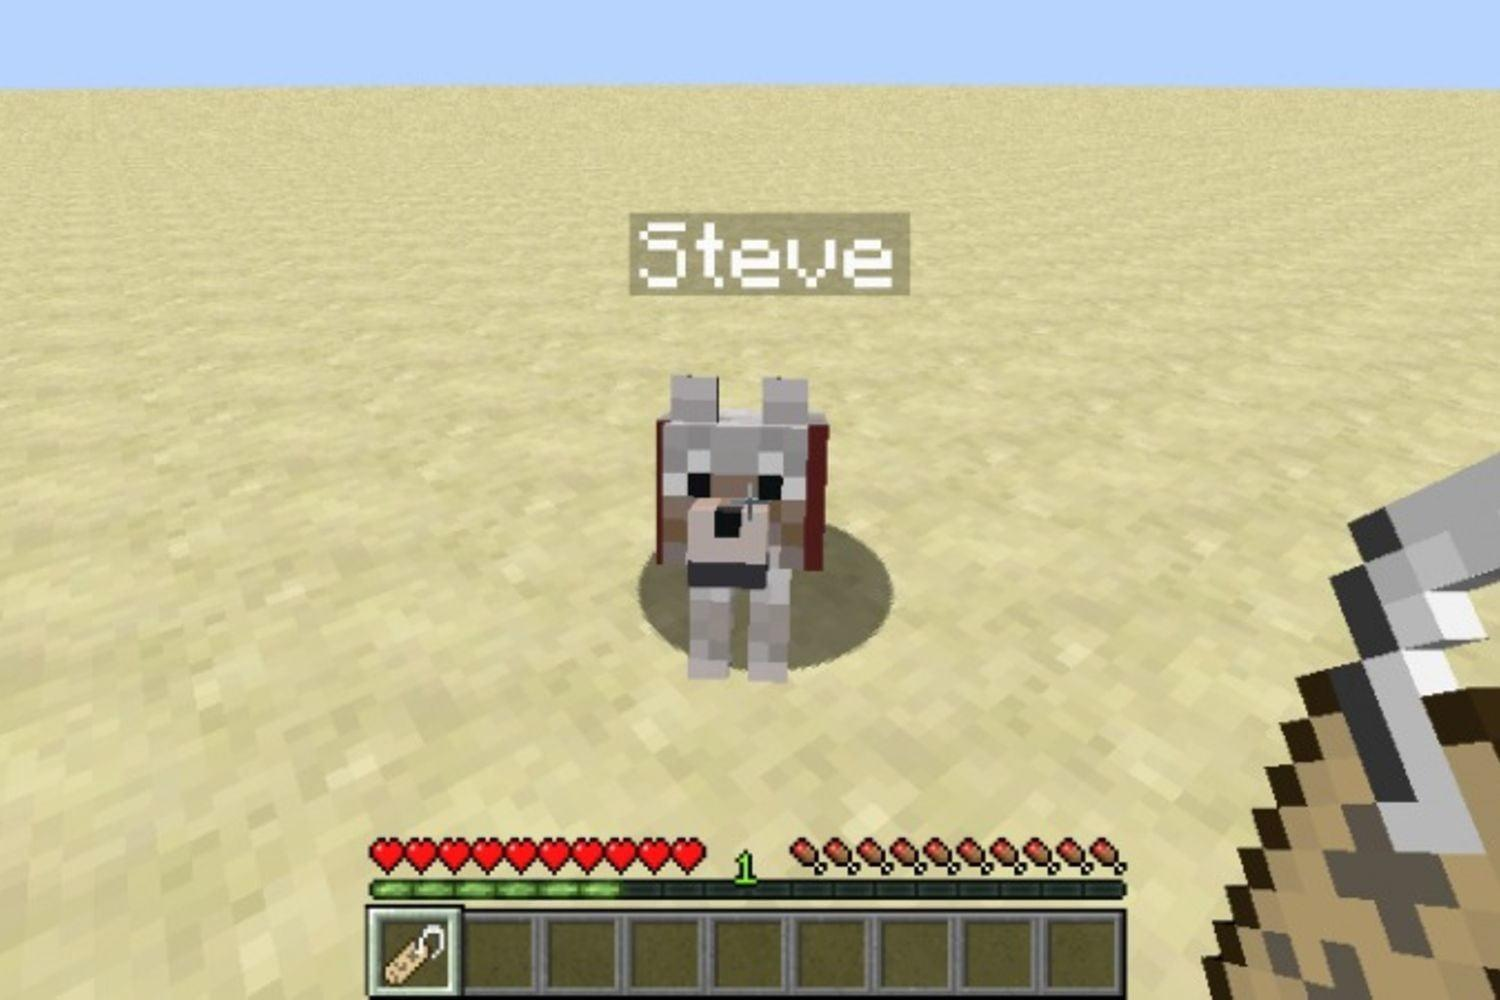 How to use a name tag in Minecraft